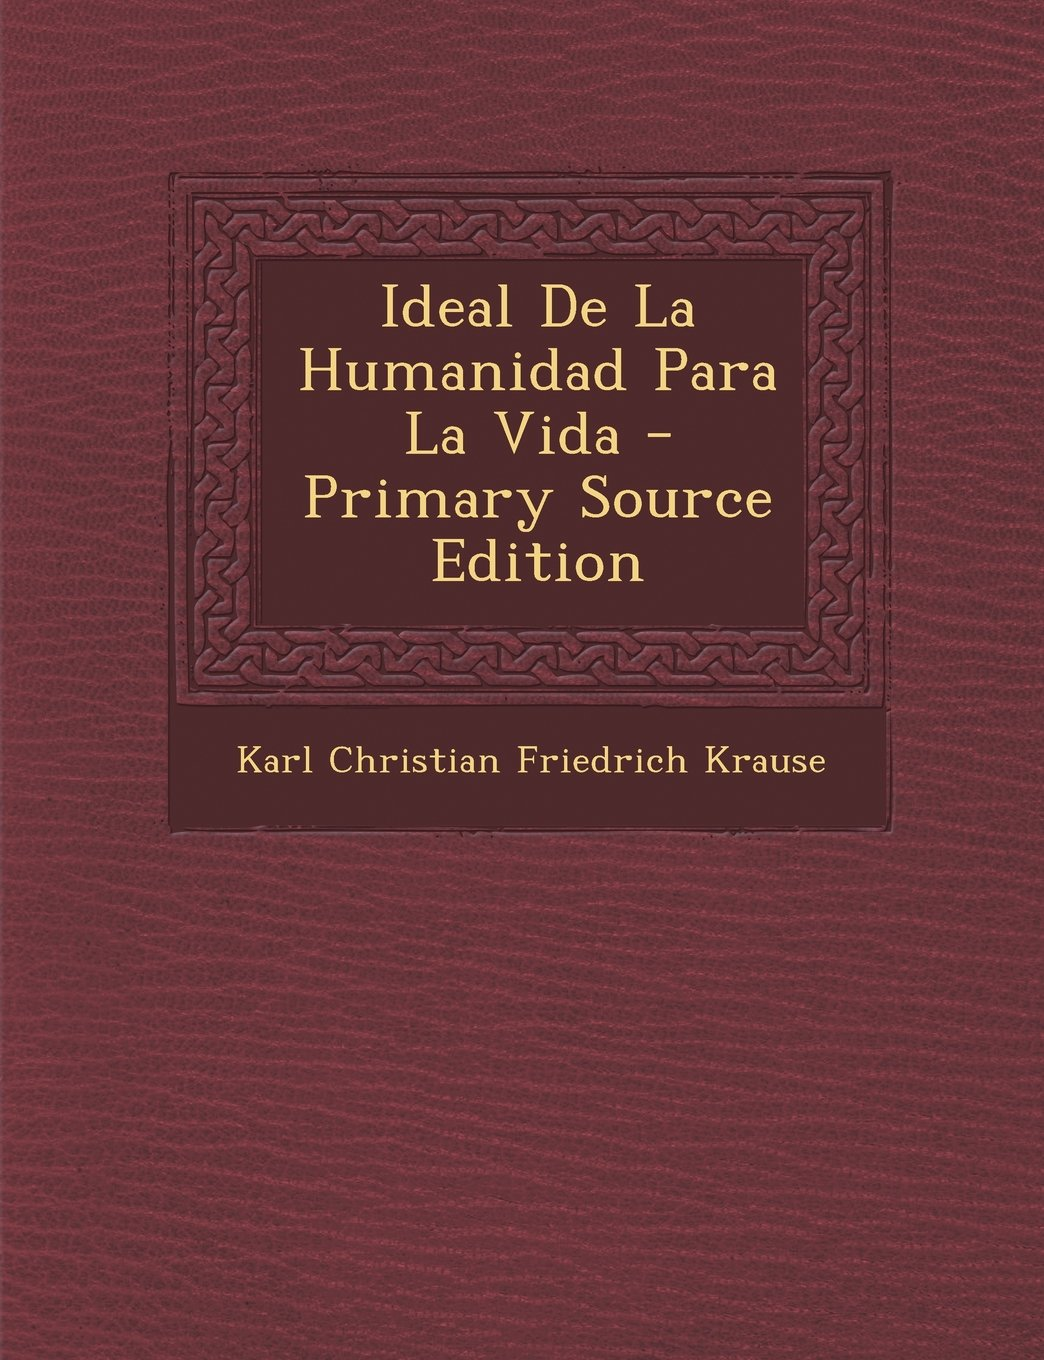 Ideal de la humanidad para la vida (Spanish Edition)